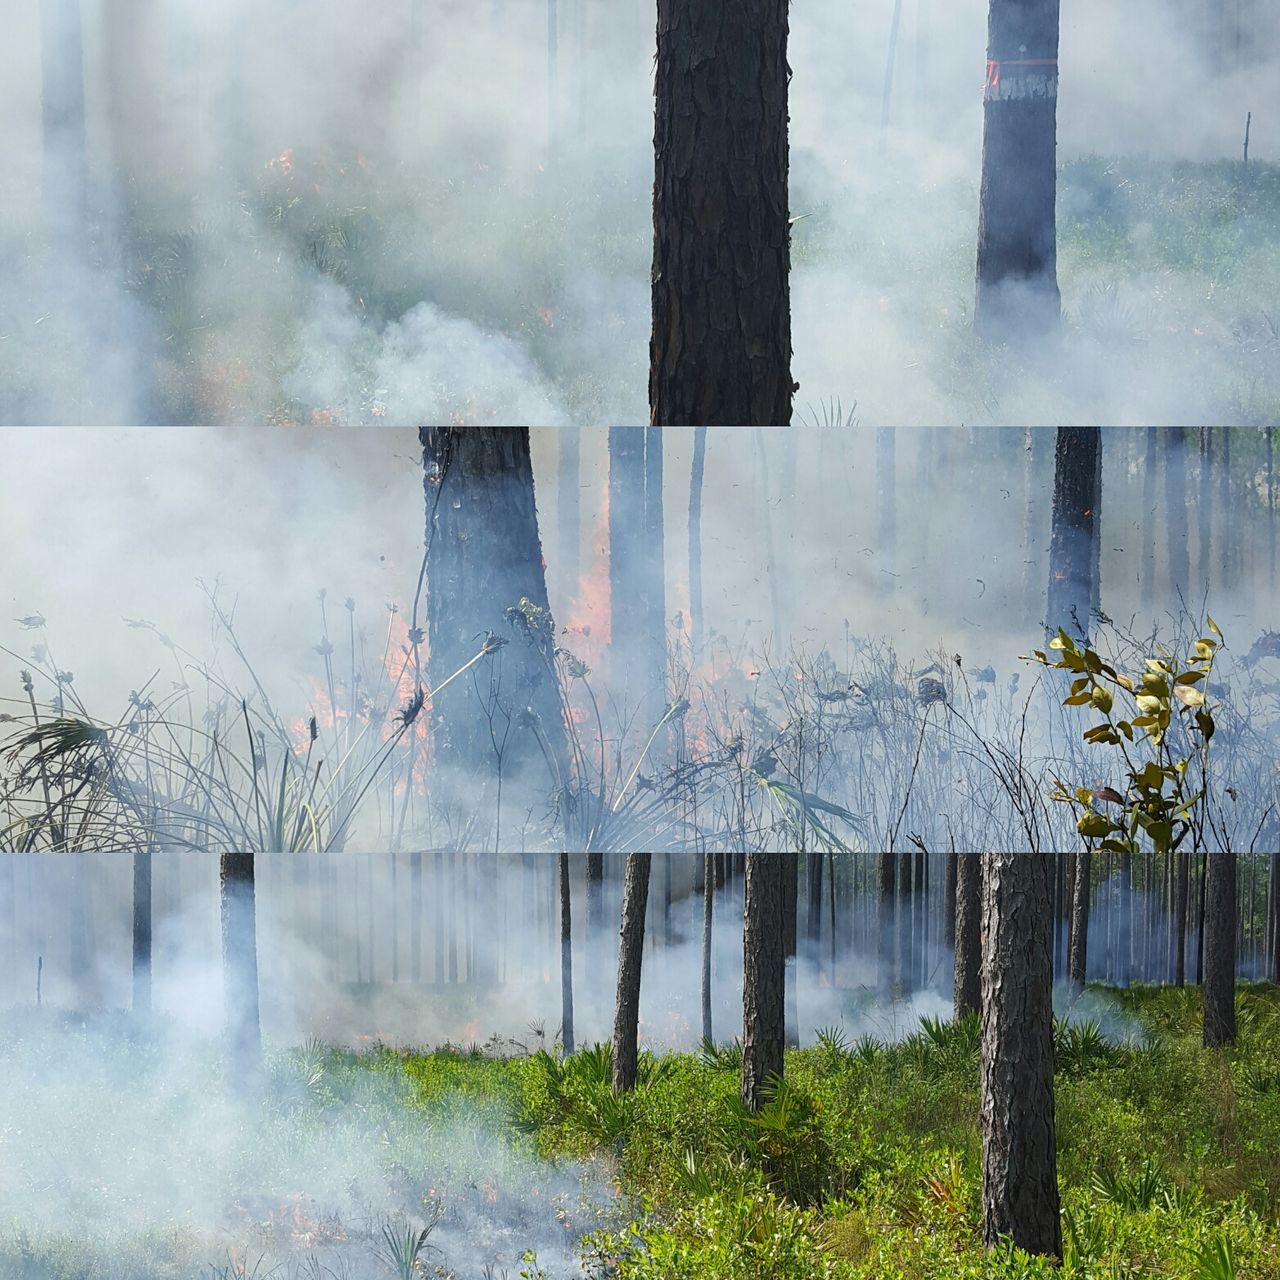 Multiple Shots Of Fire In Forest